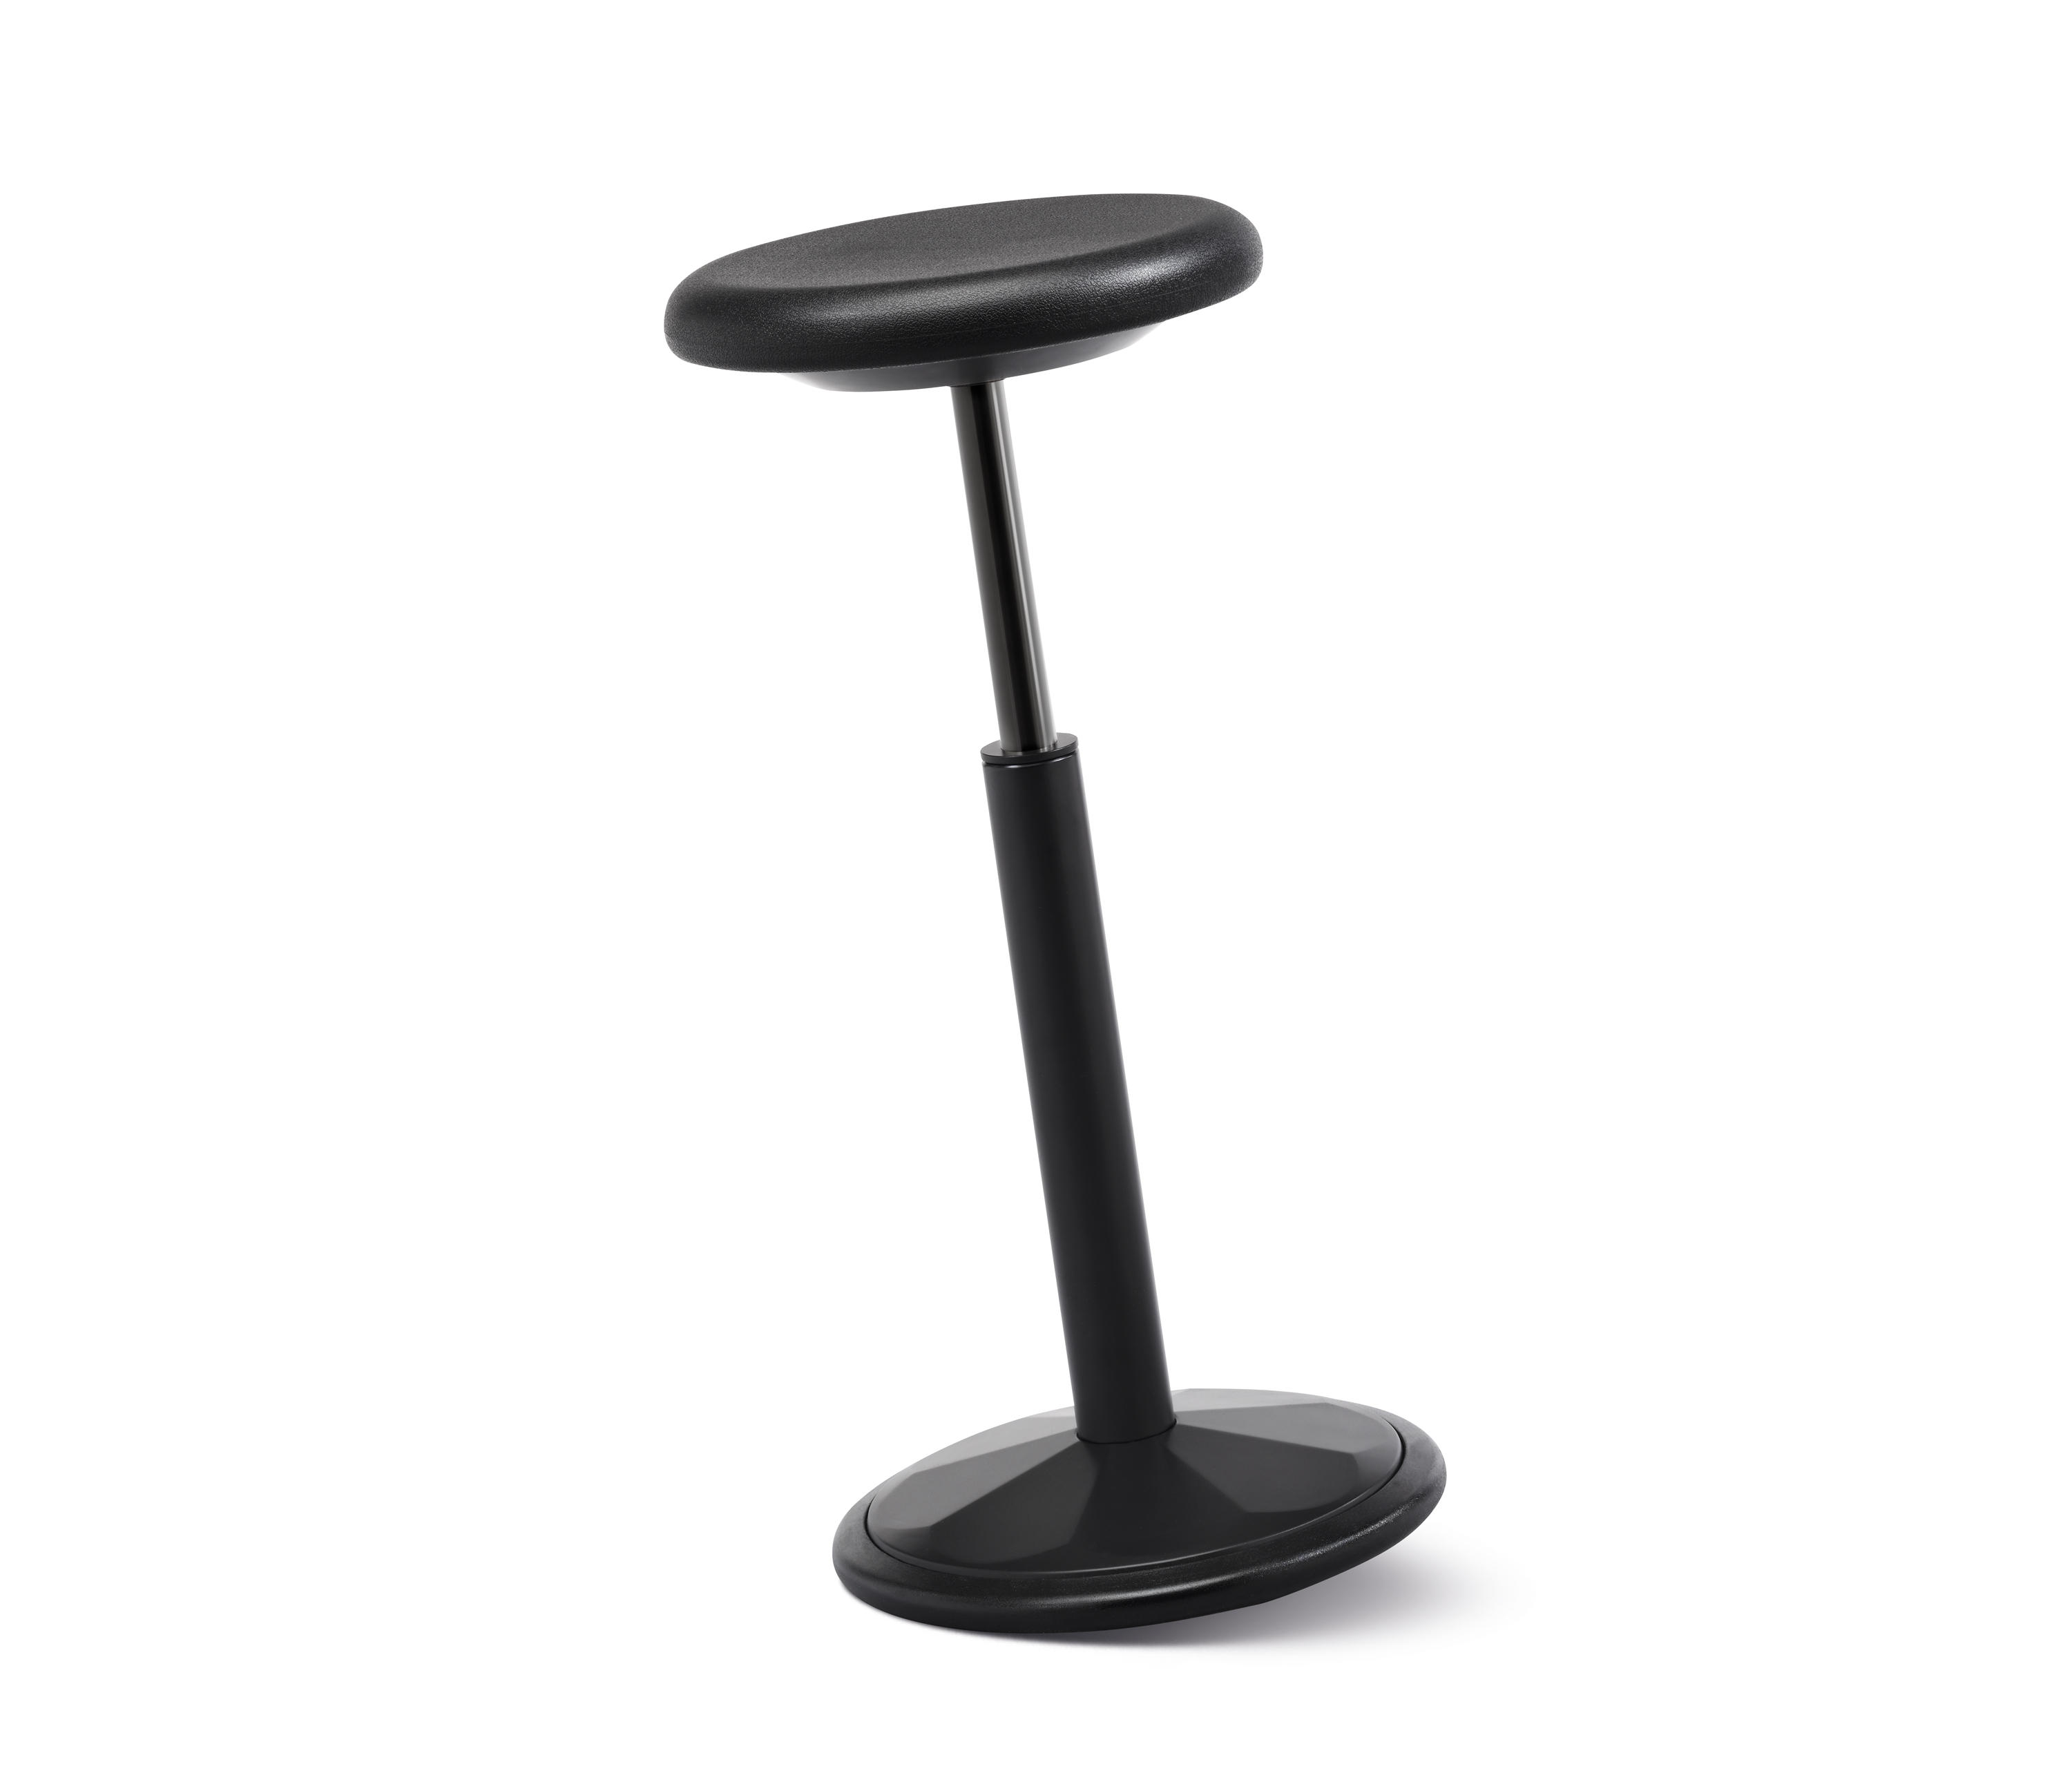 stand lean chair serta lift giroflex 10 2020 stools from